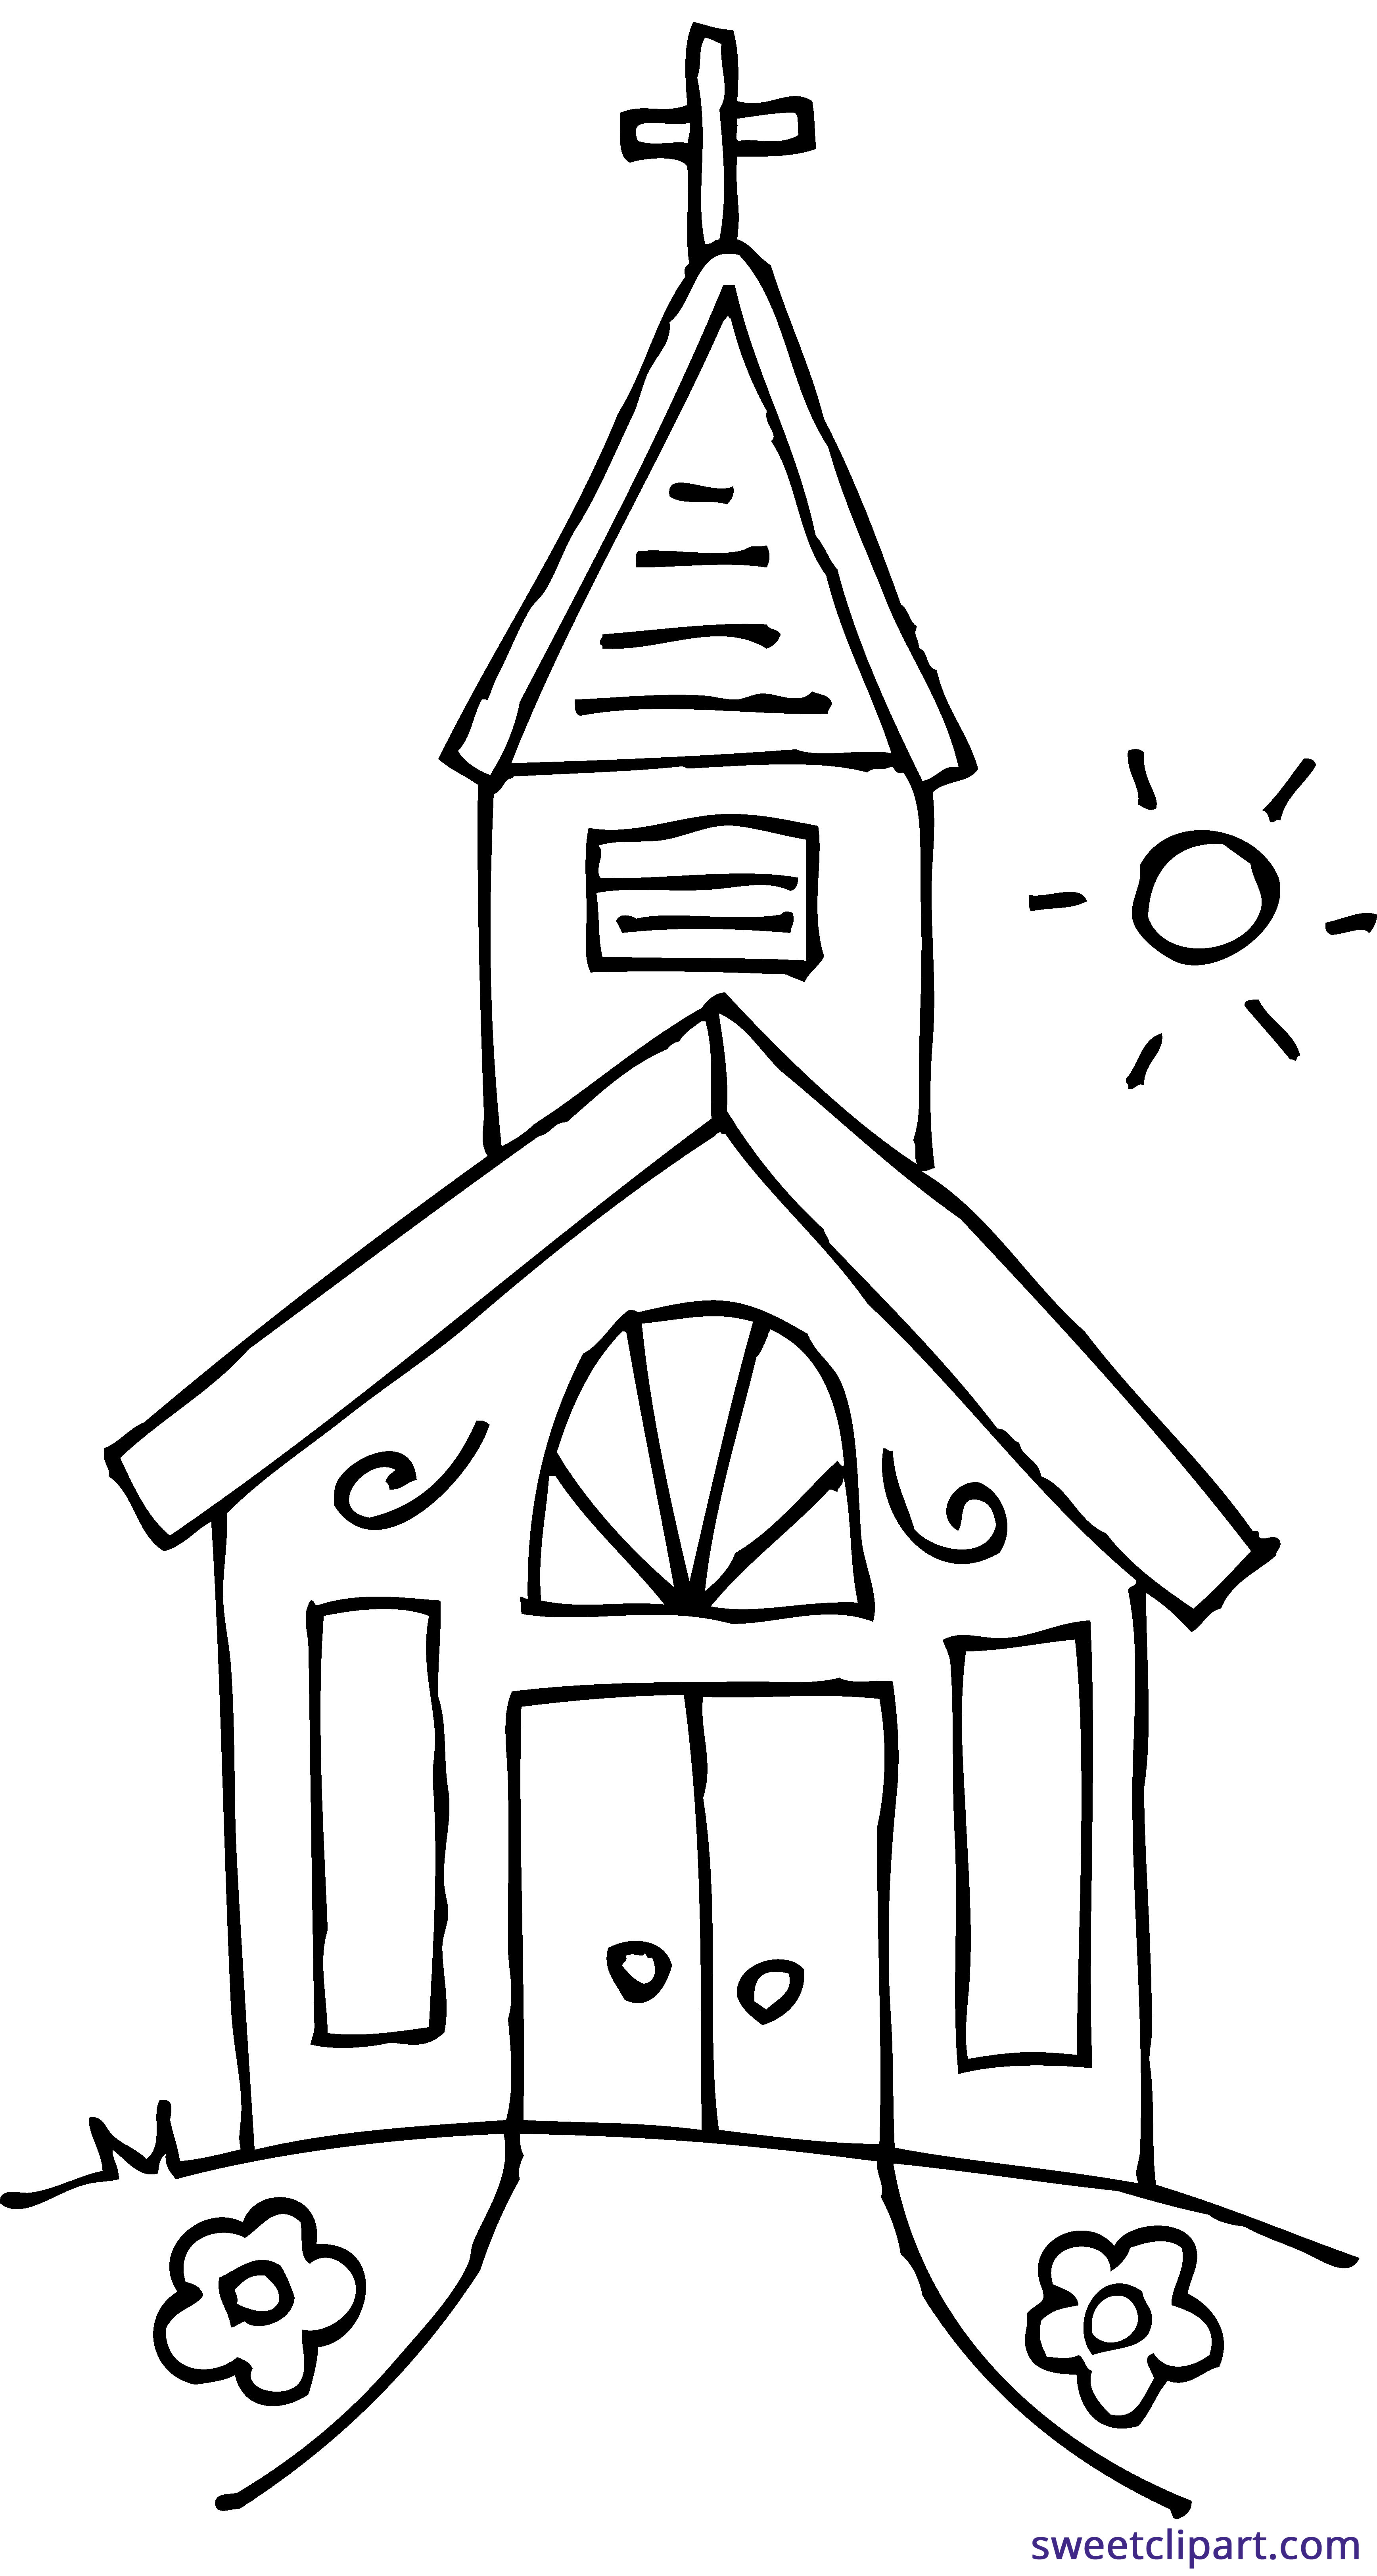 Tumblr book clipart clip art royalty free Church 2 Coloring Page Clipart - Sweet Clip Art clip art royalty free